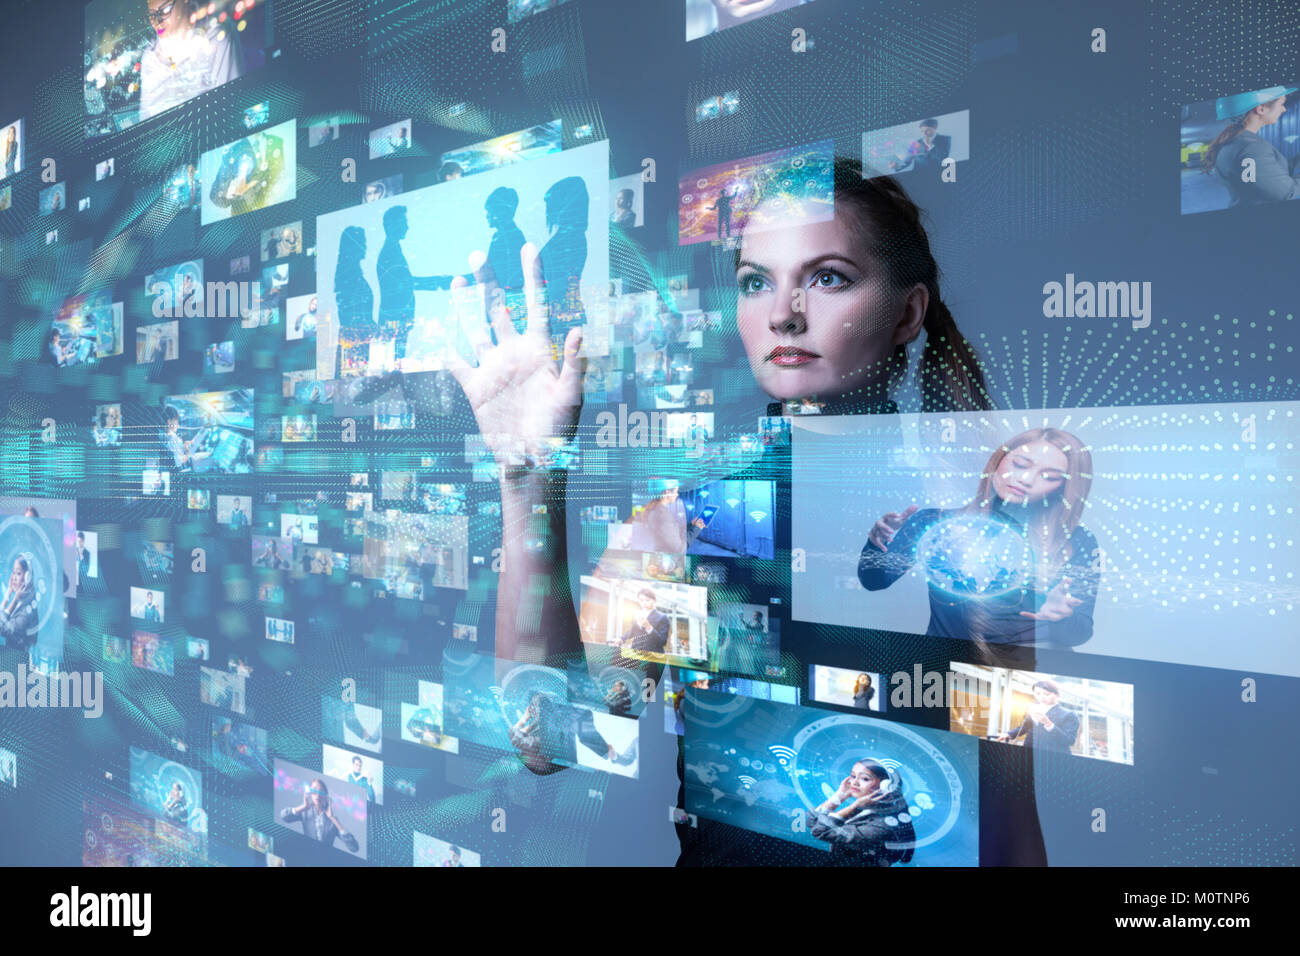 Young woman using futuristic interface. IoT(Internet of Things). ICT(Information Communication Network). Social Stock Photo